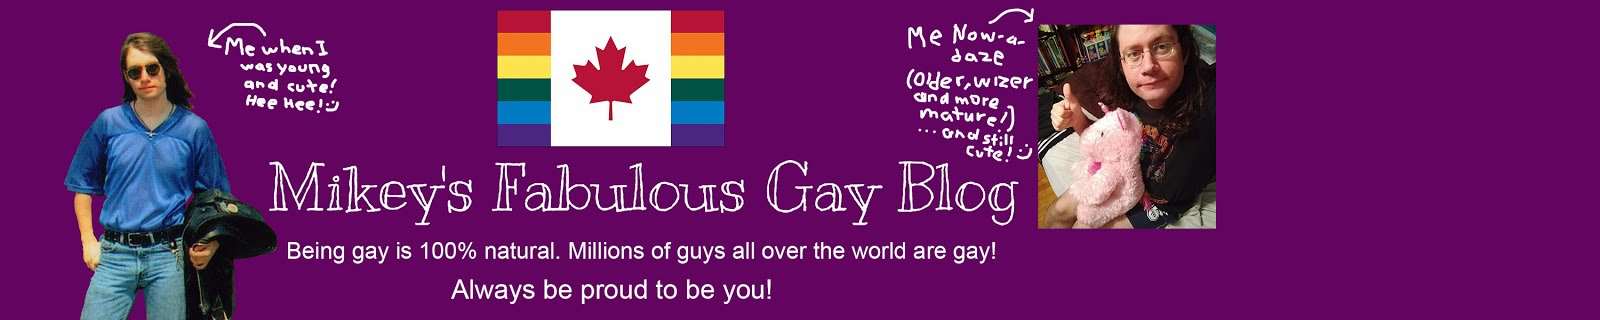 Mikey's Fabulous Gay Blog